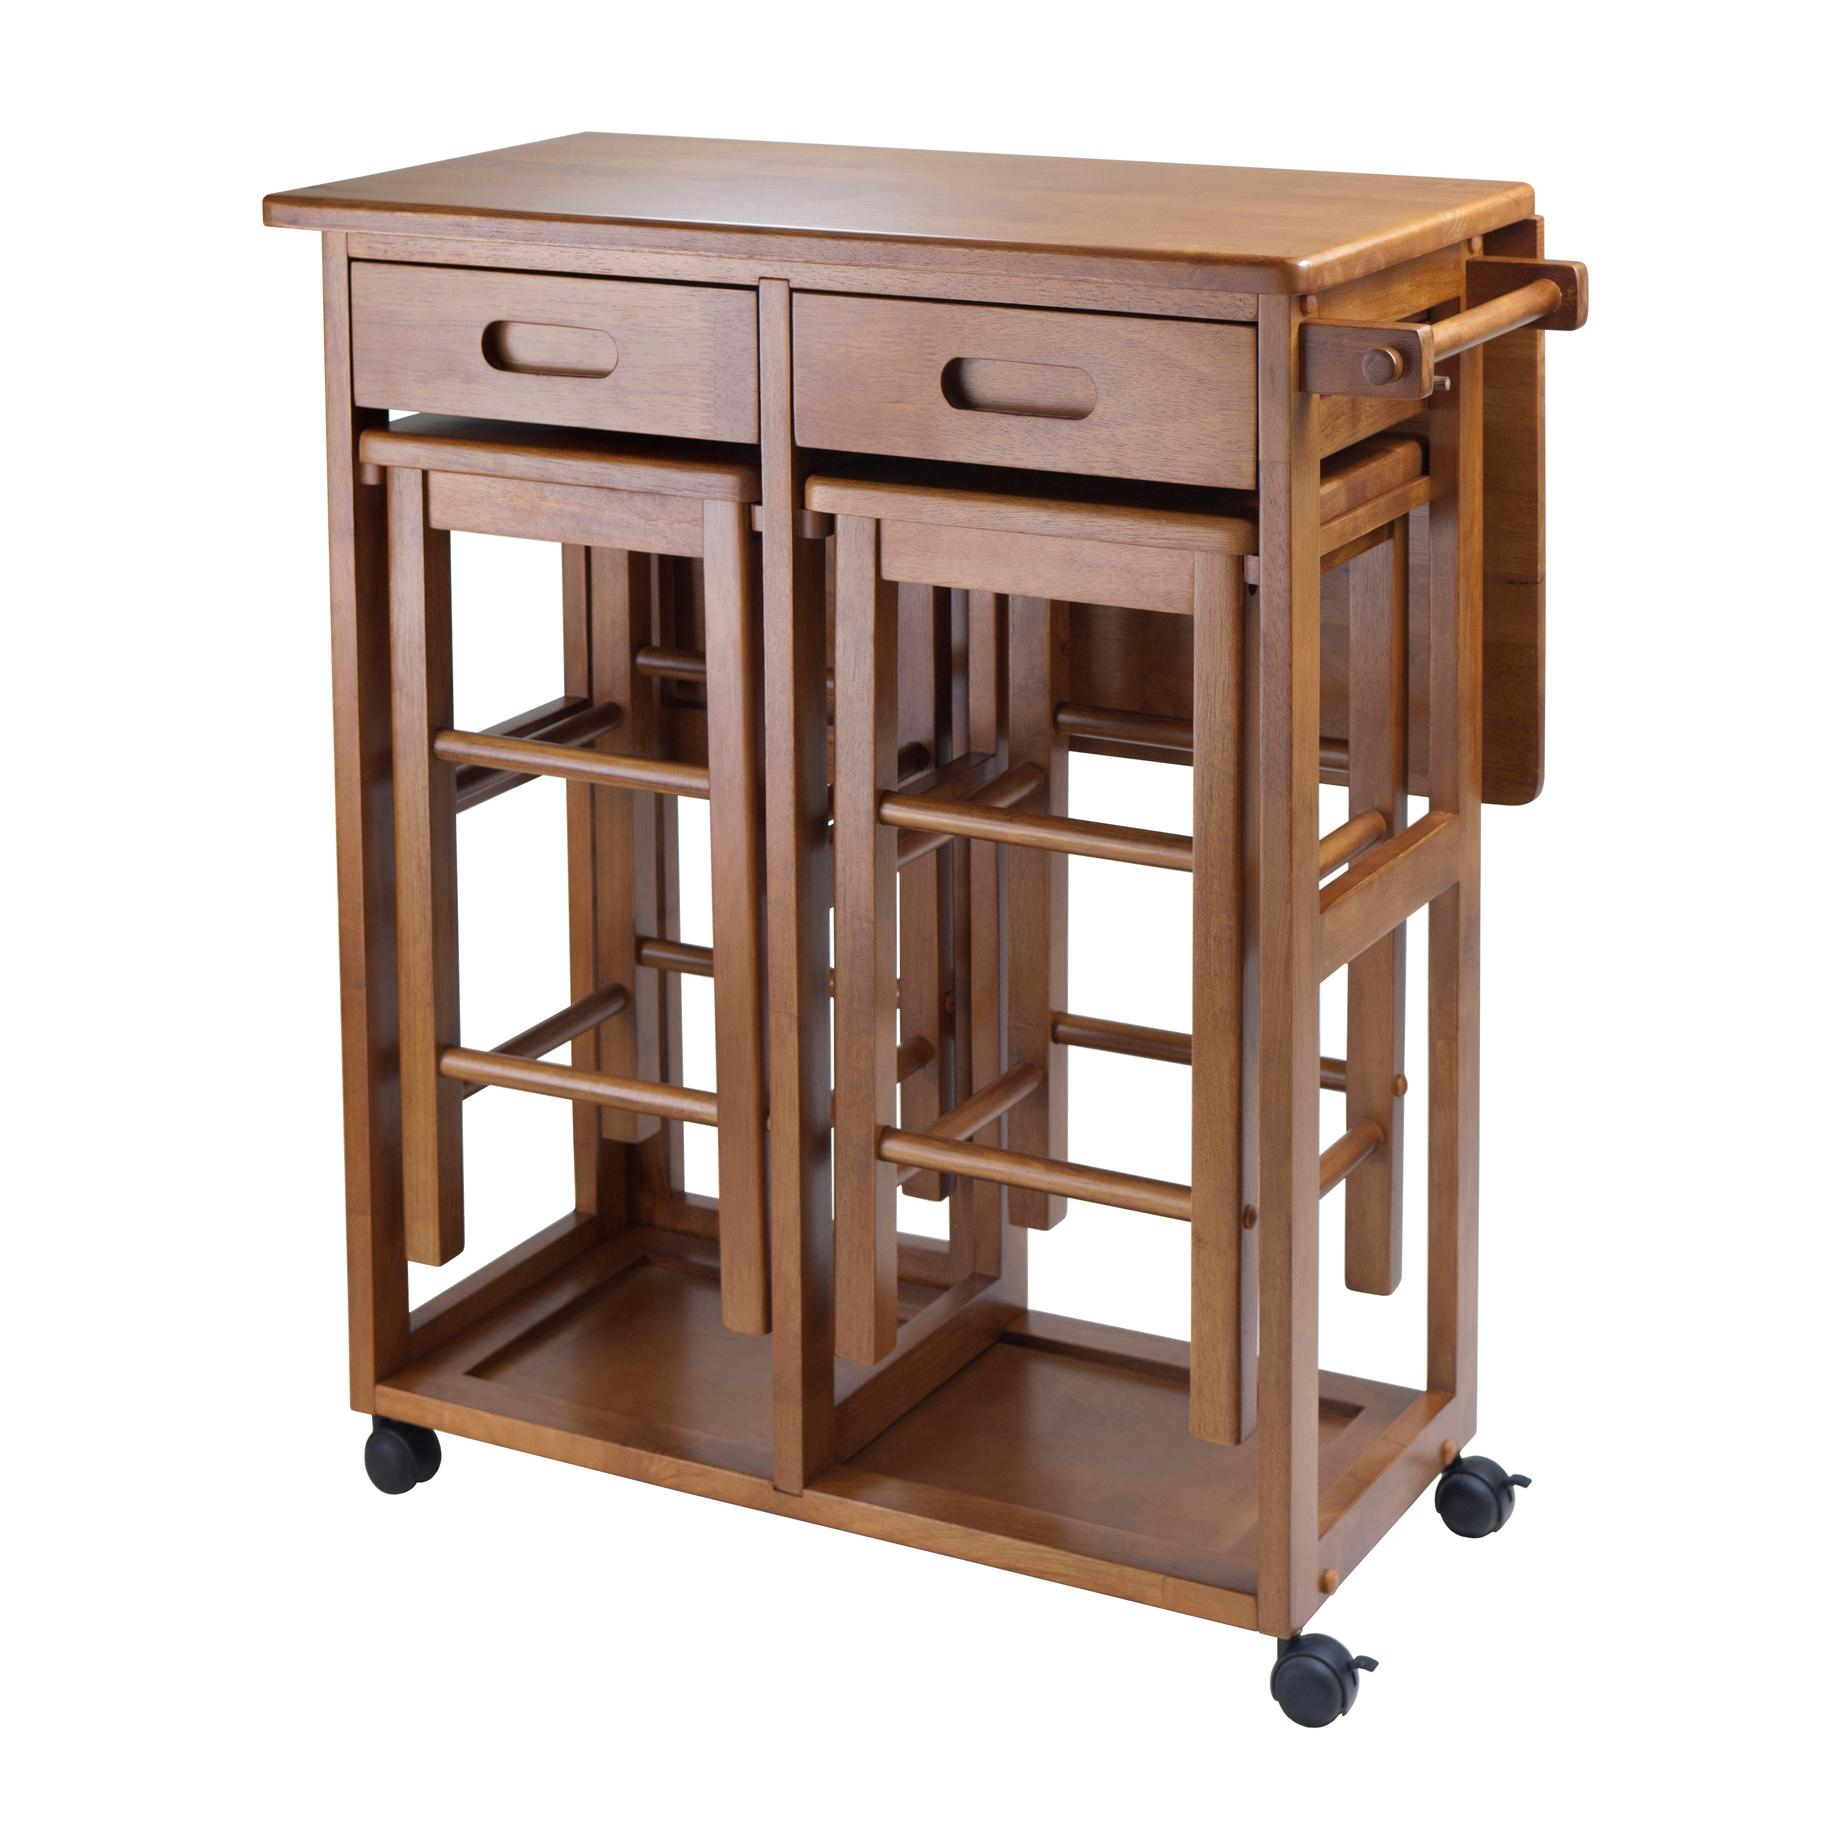 Winsome Wood Space Saver With 2 Stools Square Amazon Ca Home